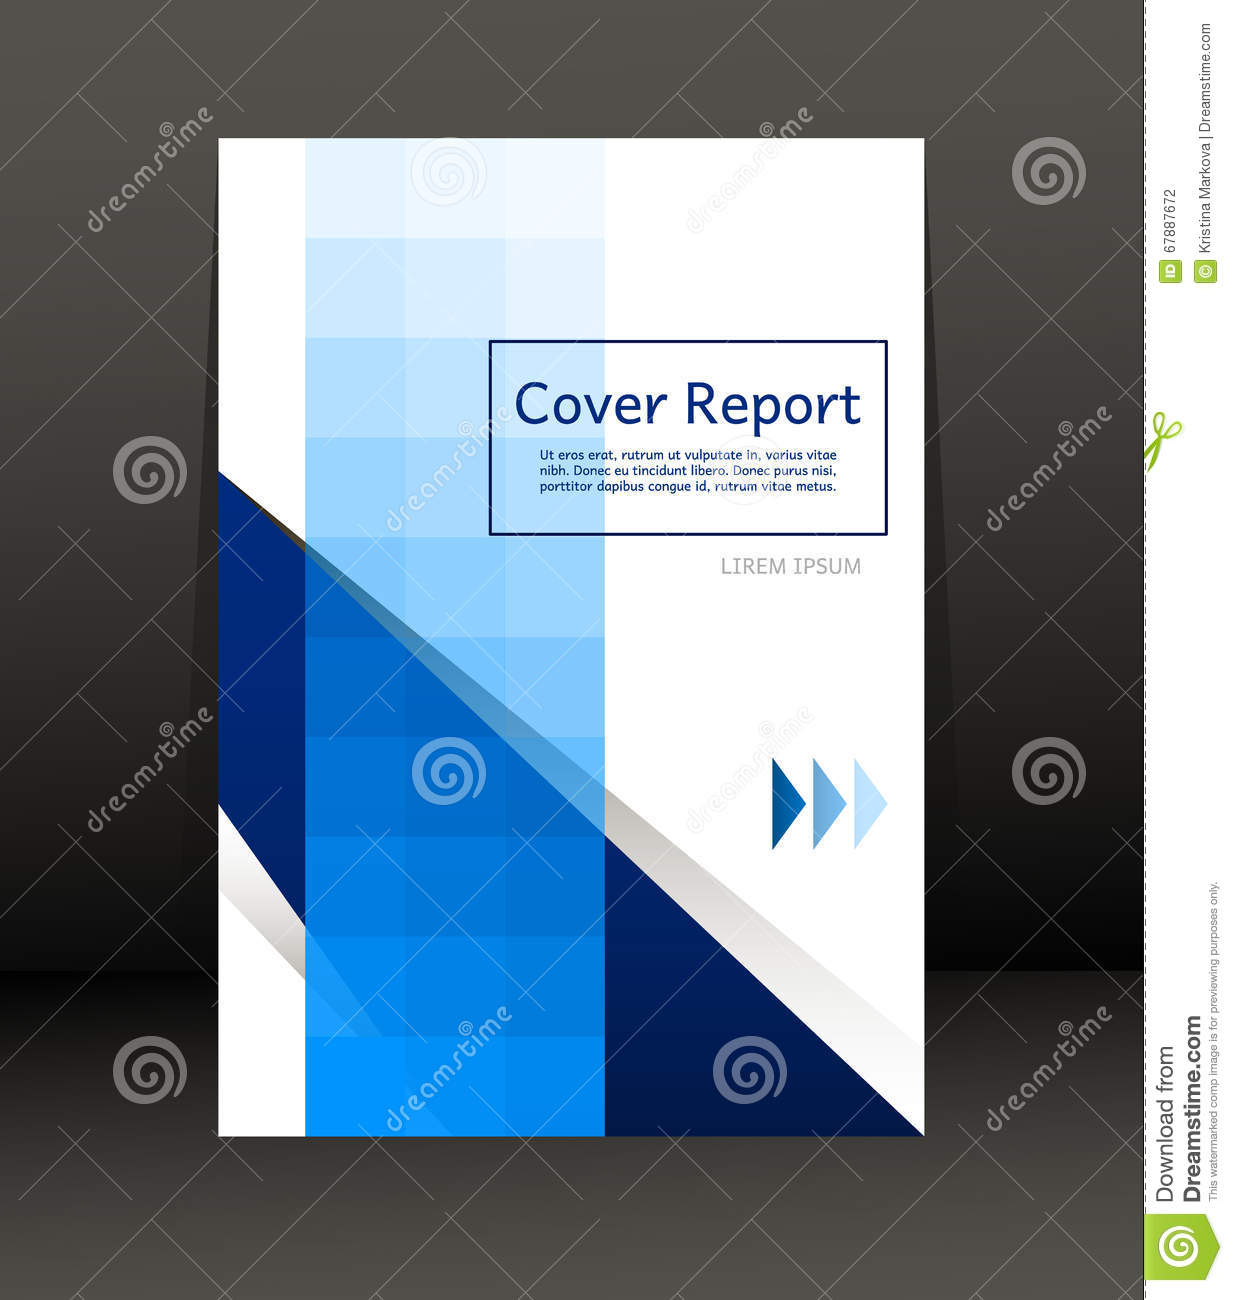 Template Design for Cover Report. Flyer. Poster in A4 size.